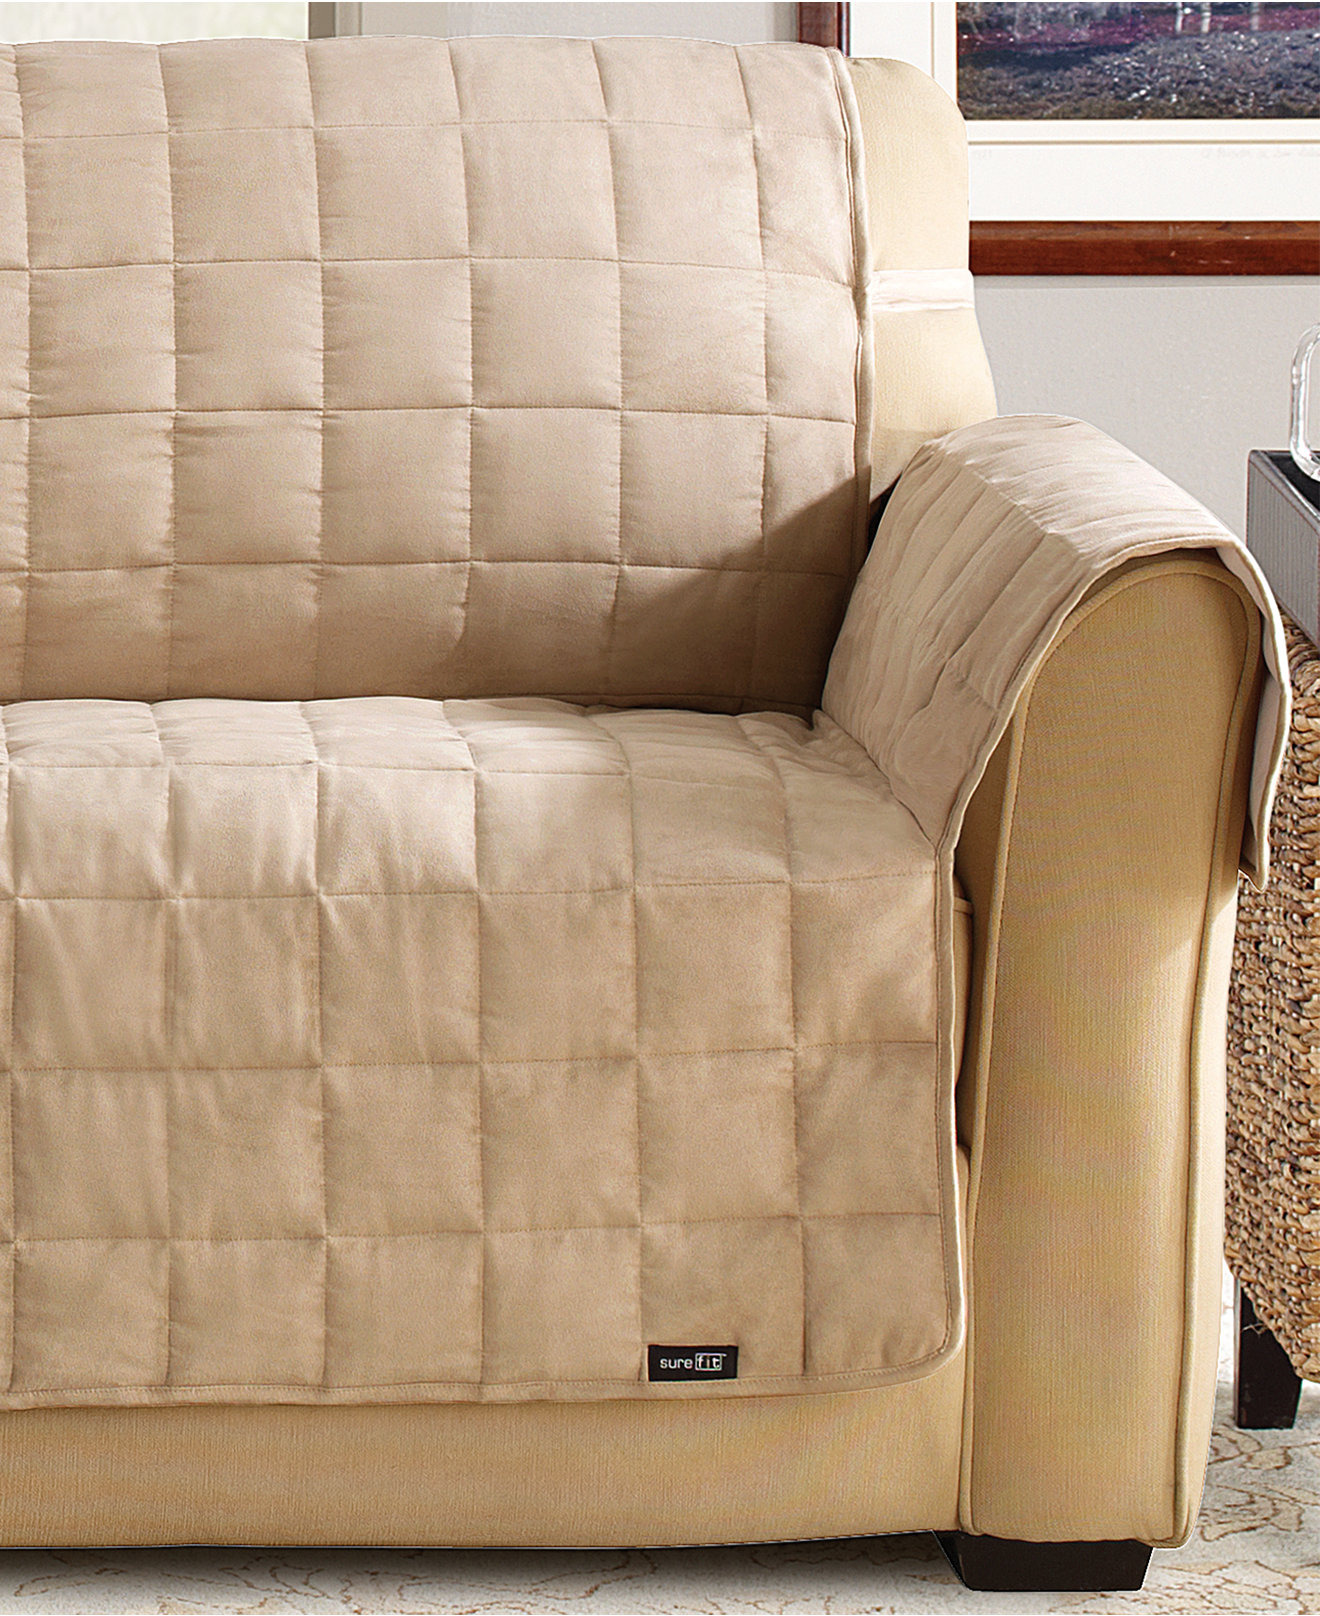 Sure Fit Suede Quilted Waterproof Sofa Furniture Cover